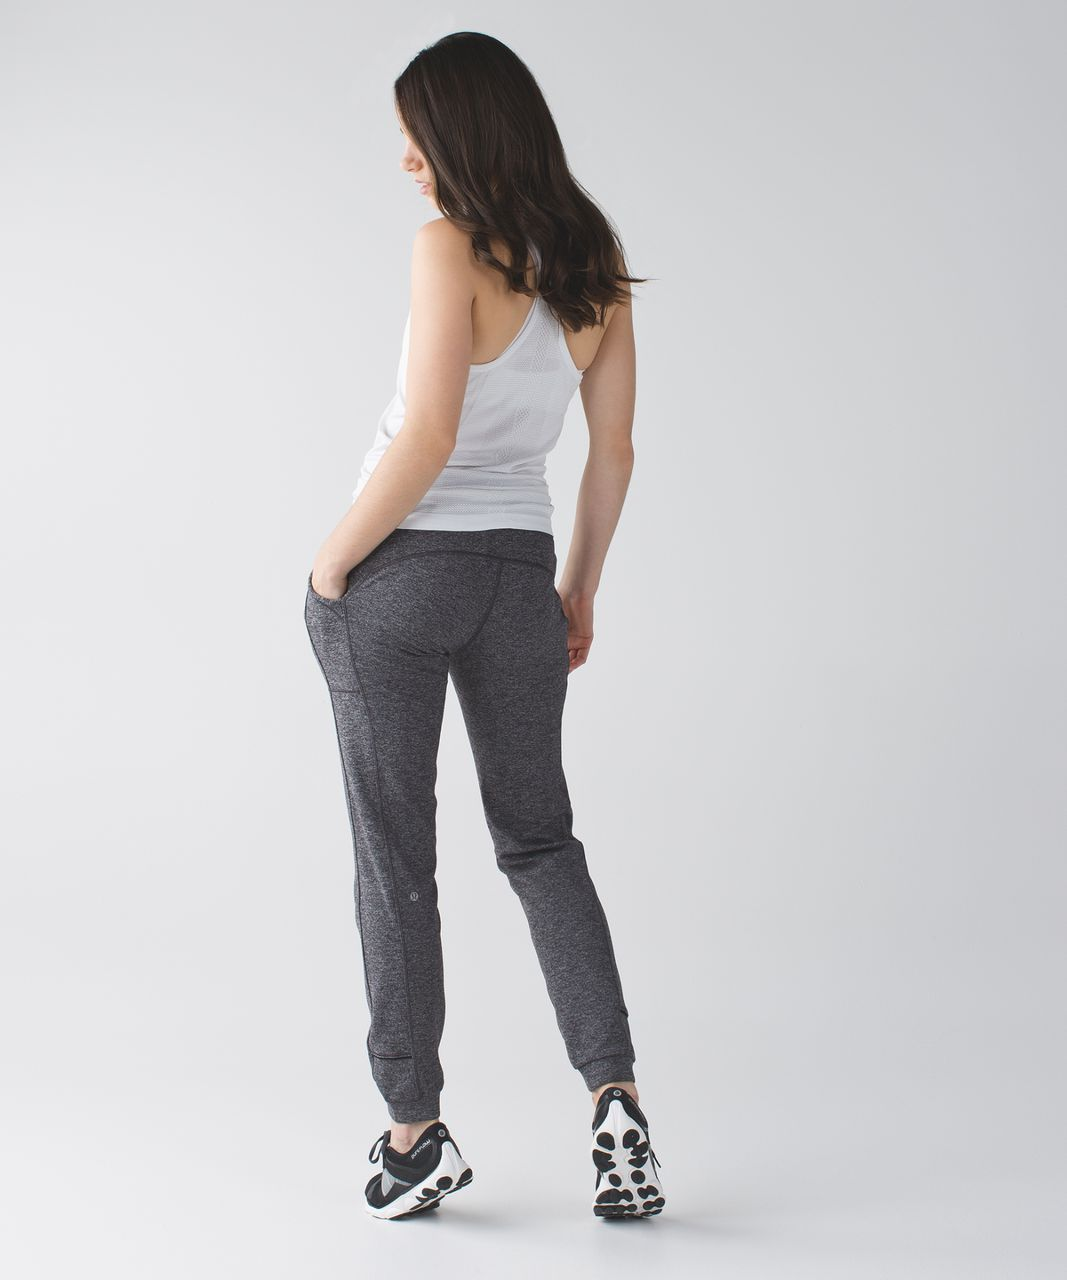 Lululemon Base Runner Pant III - Hyper Stripe Heathered Battleship Heathered Black